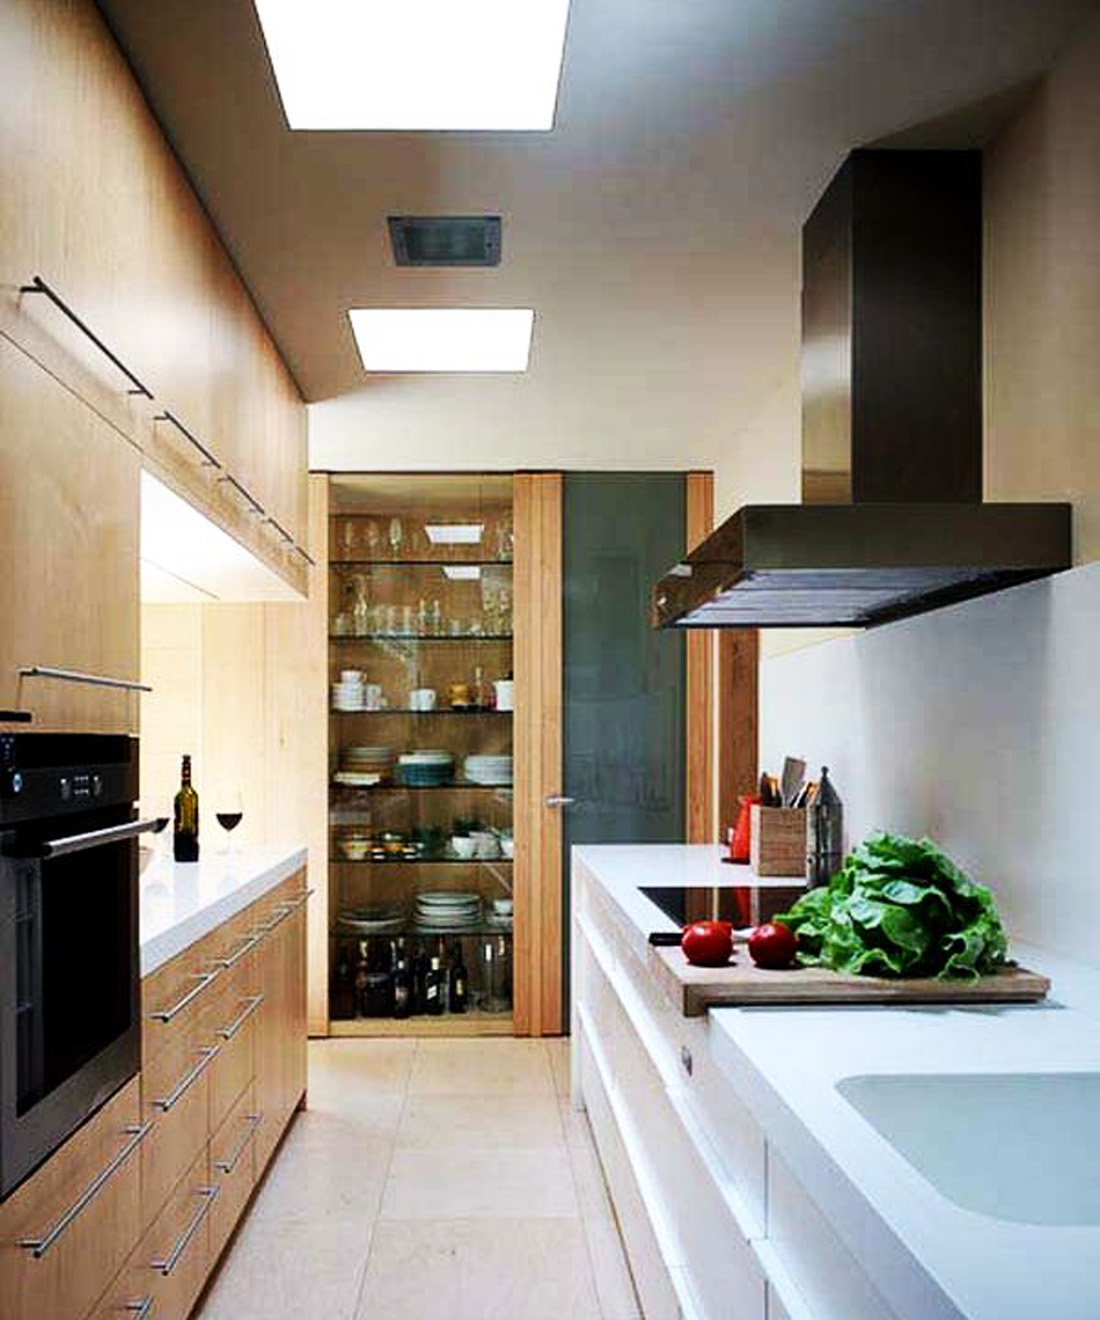 25 Modern Small Kitchen Design Ideas on Modern Kitchens  id=96824